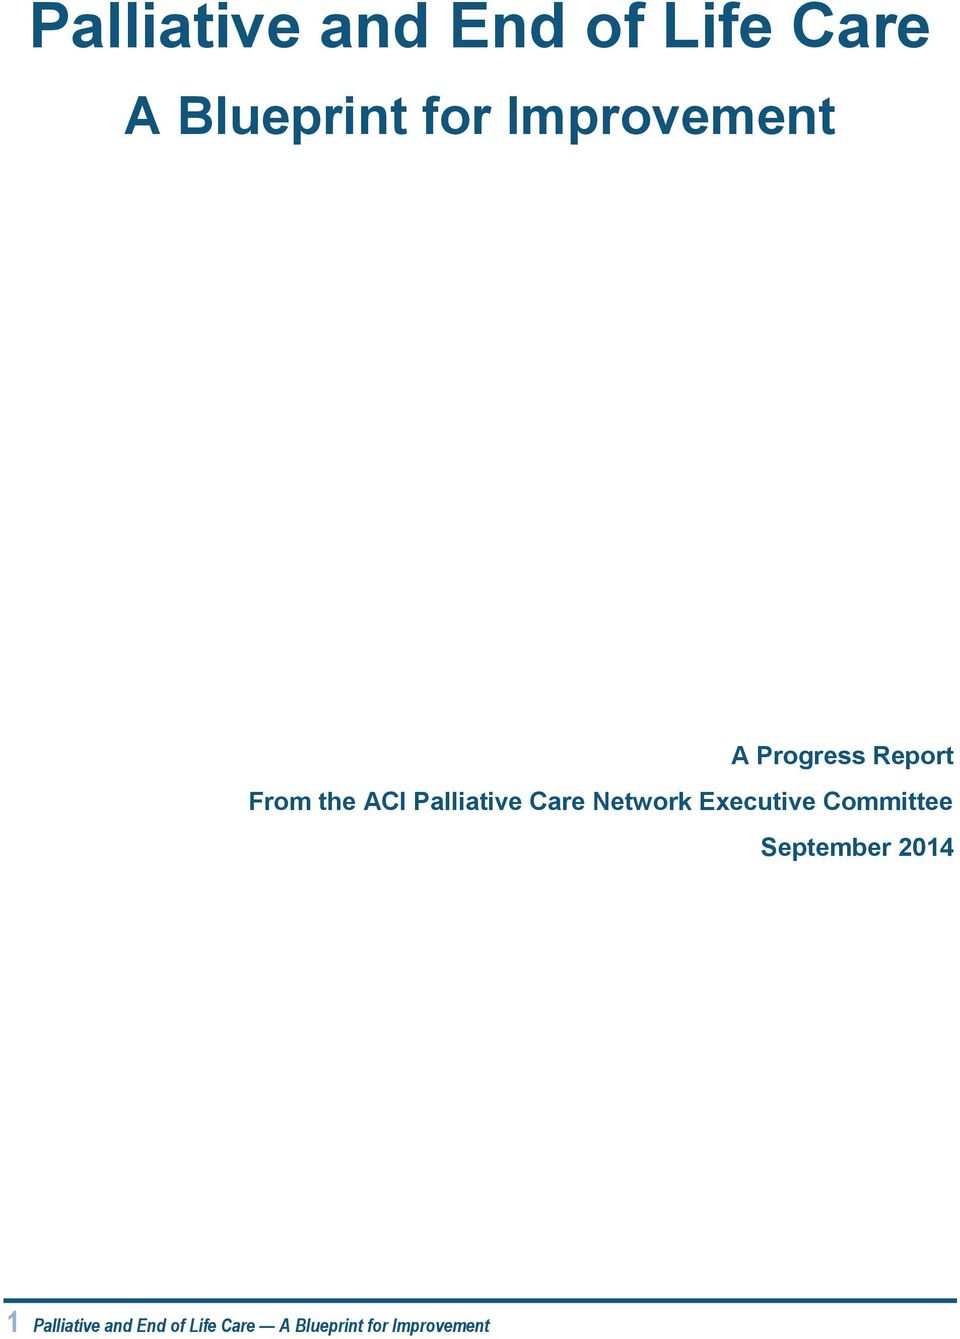 Palliative Care Network Executive Committee